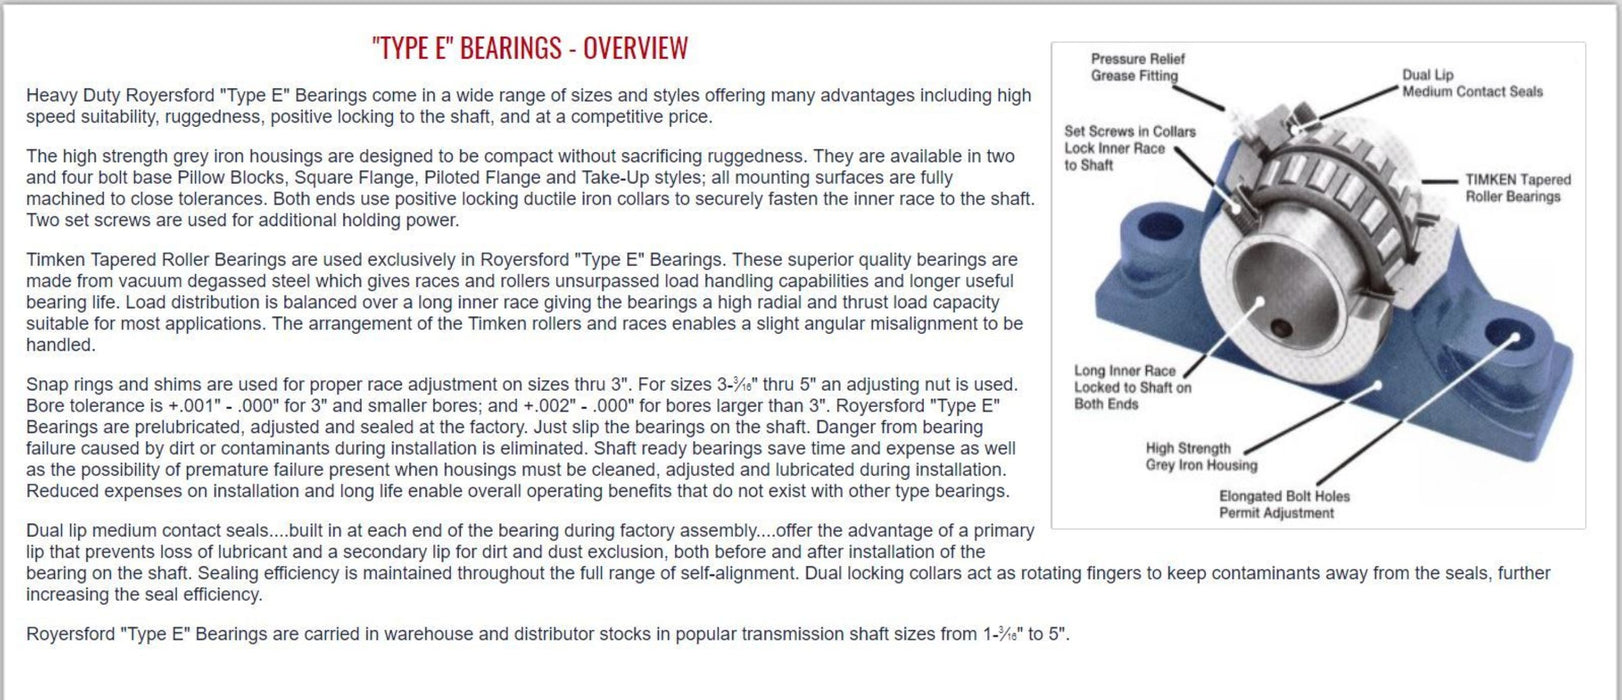 20-02-0107, ROYERSFORD TYPE E Pillow Block Bearing, 1-7/16 with Timken Tapered Roller Bearings